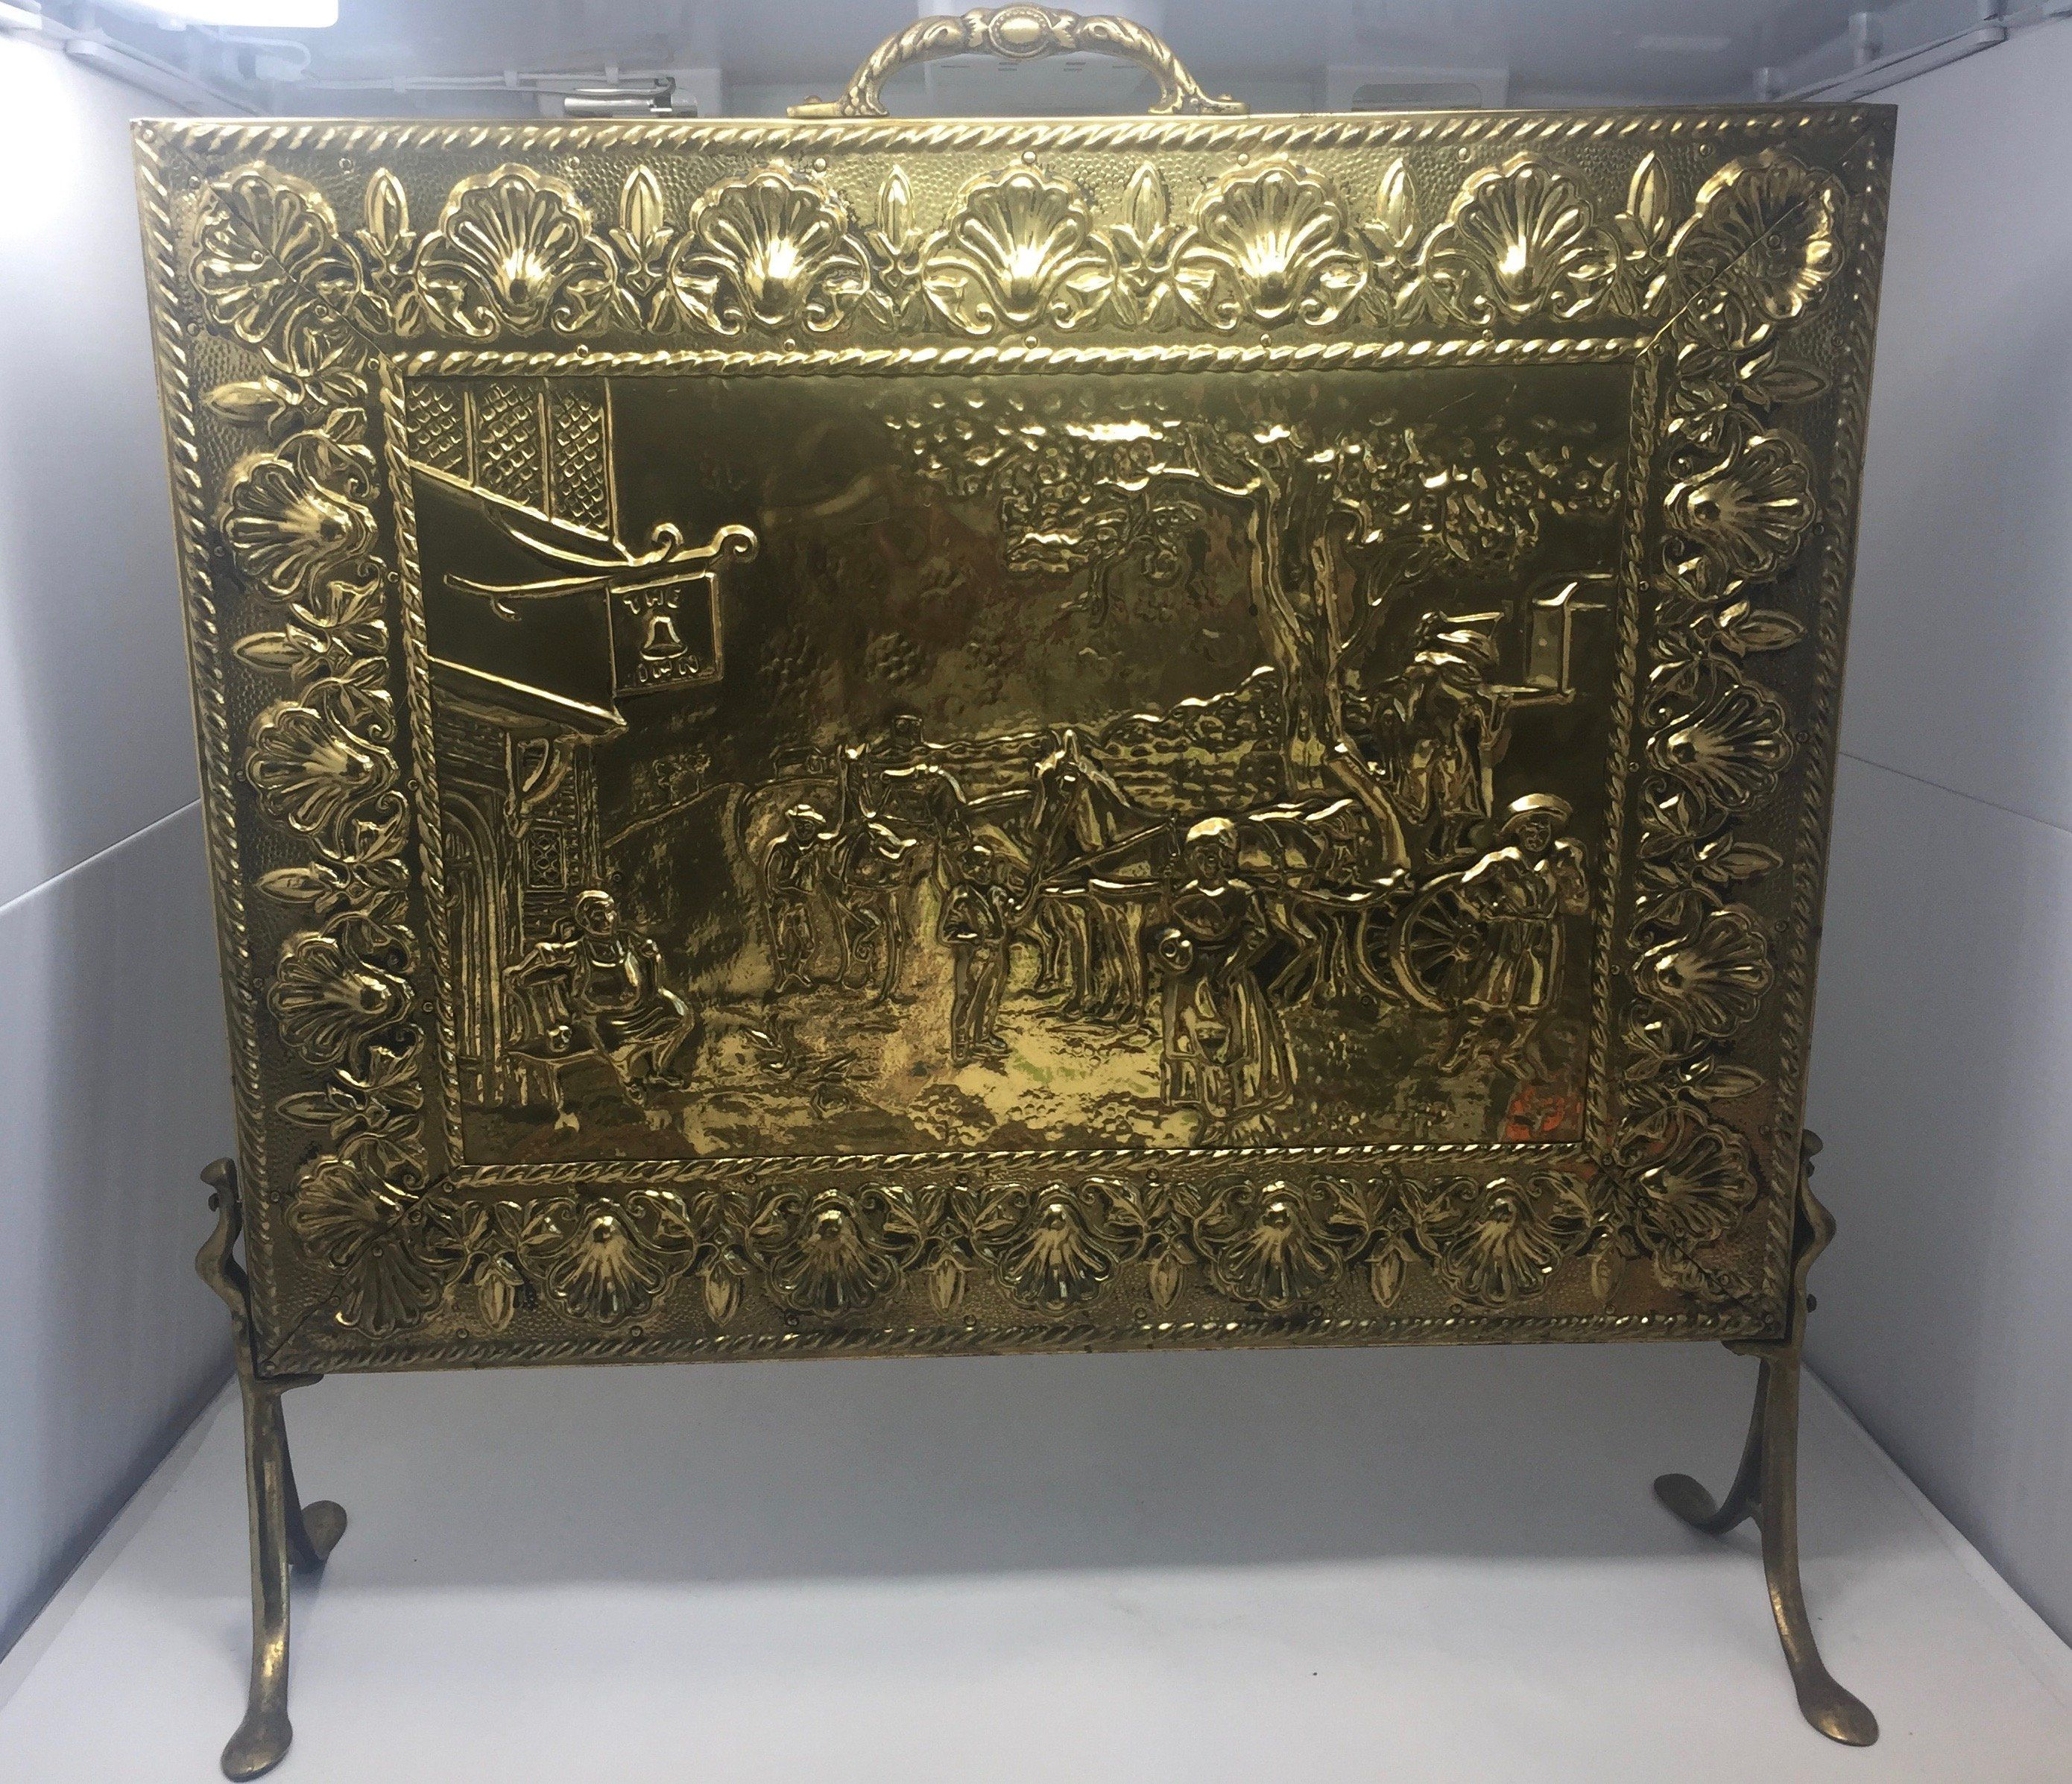 Brass Repousse Embossed Antique Fireplace Screen Handcrafted